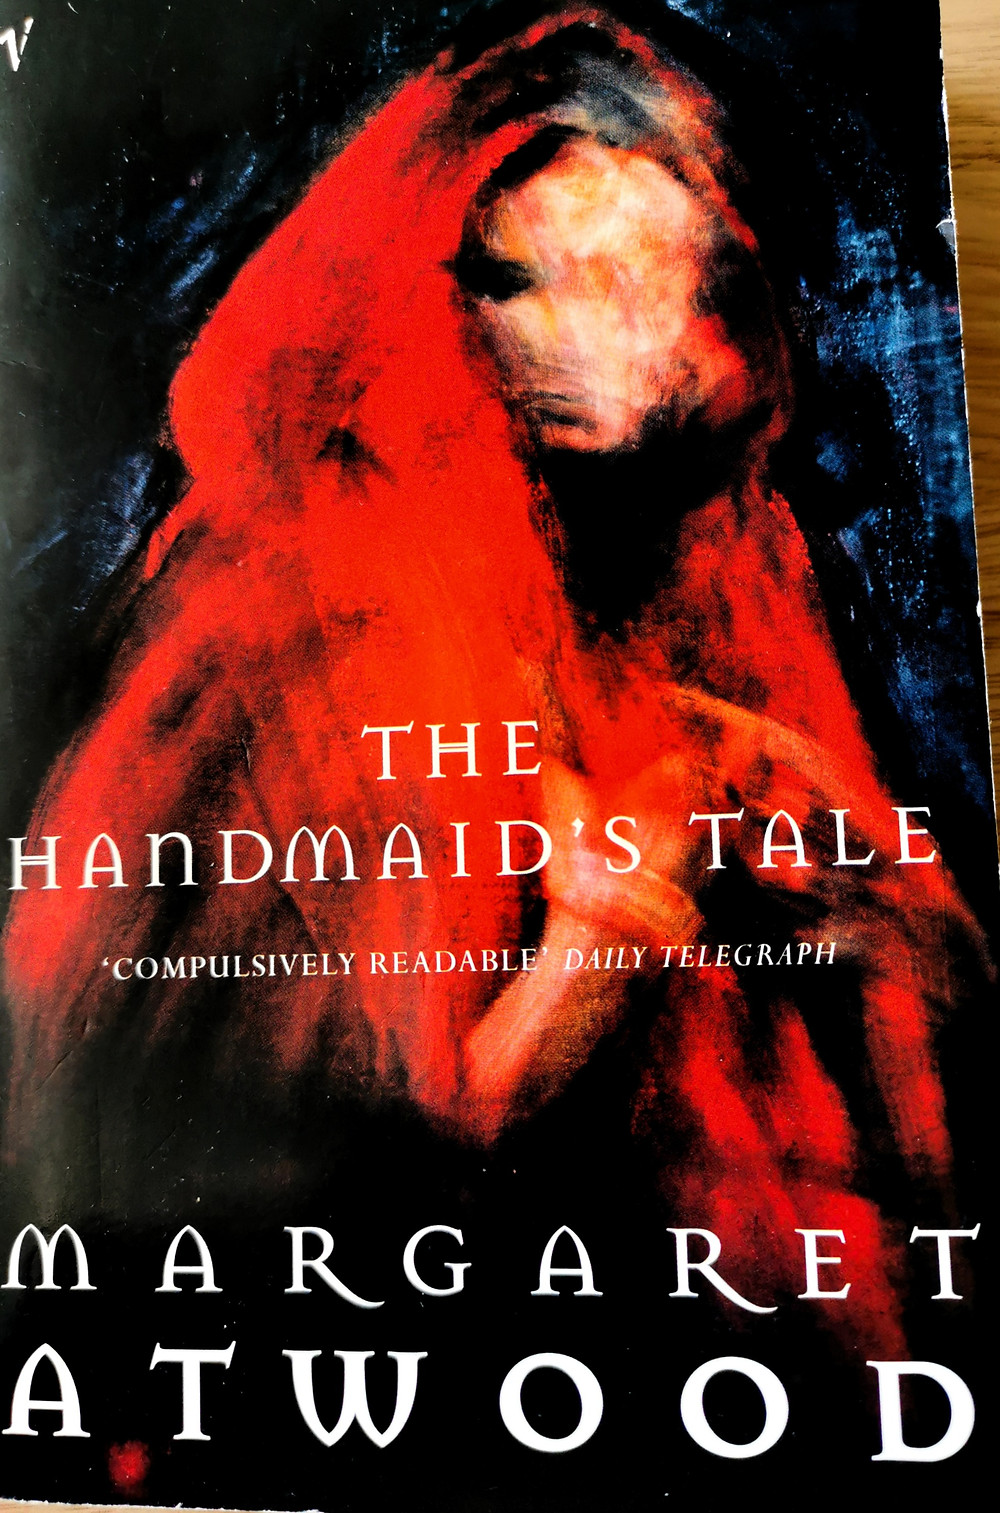 cover of Margaret Atwood's 'The Handmaid's Tale', showing an abstract painting of a faceless woman wrapped in a red cloak